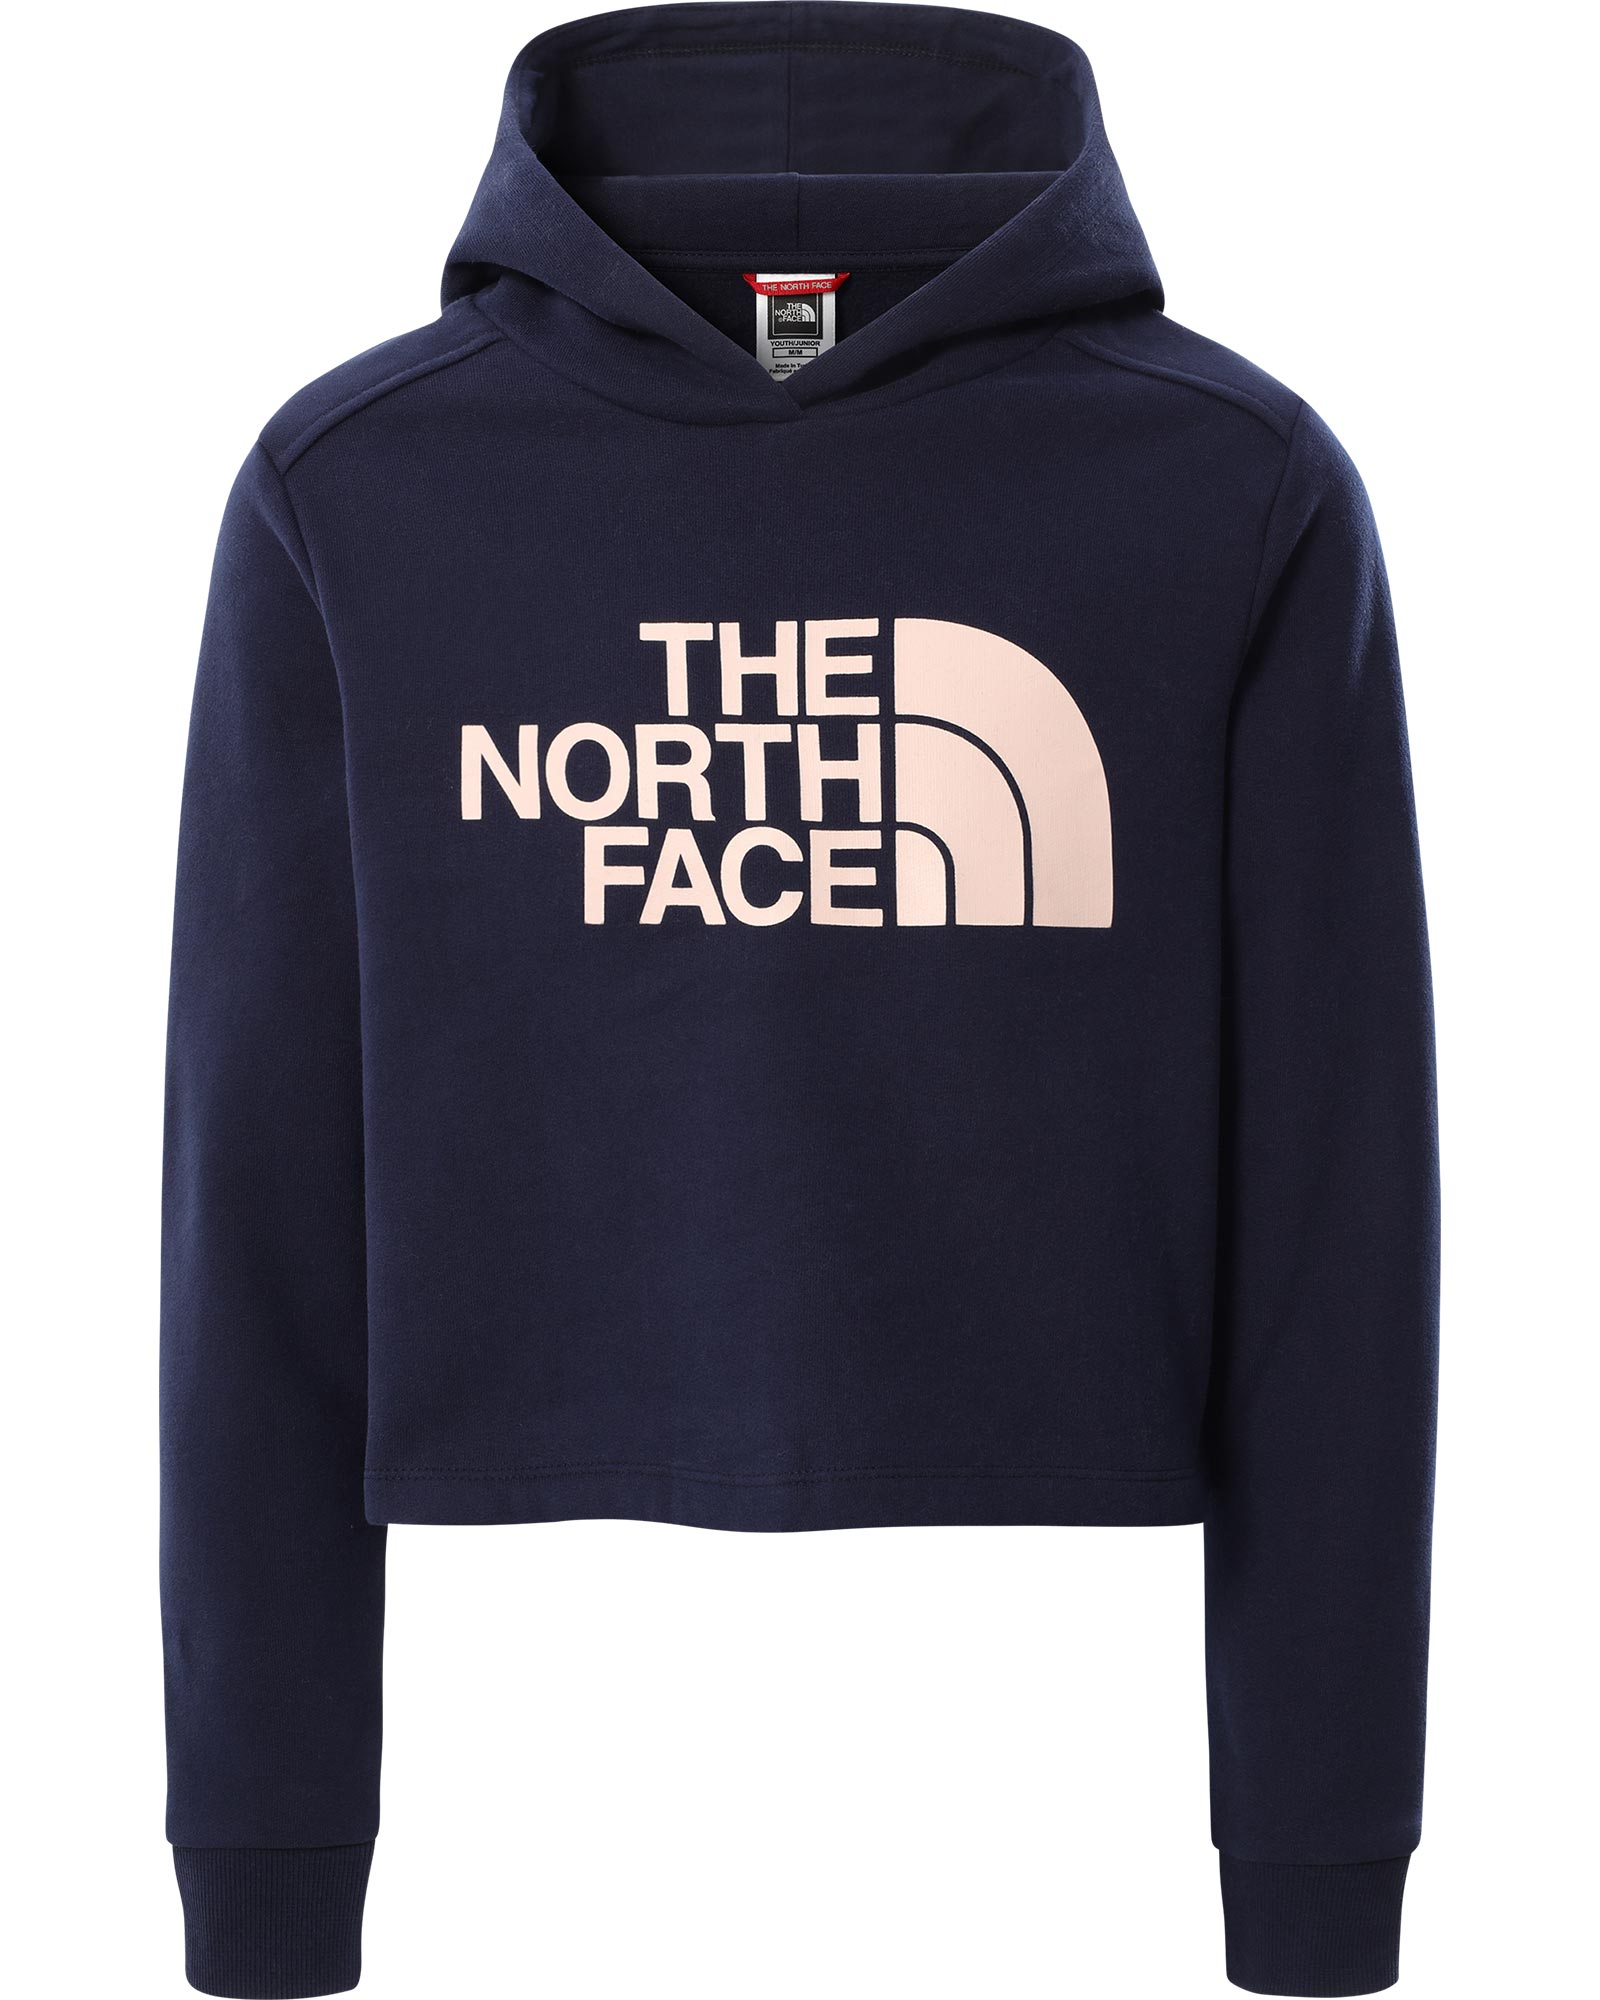 The North Face Girls' Drew Peak Cropped P/O Hoodie 0